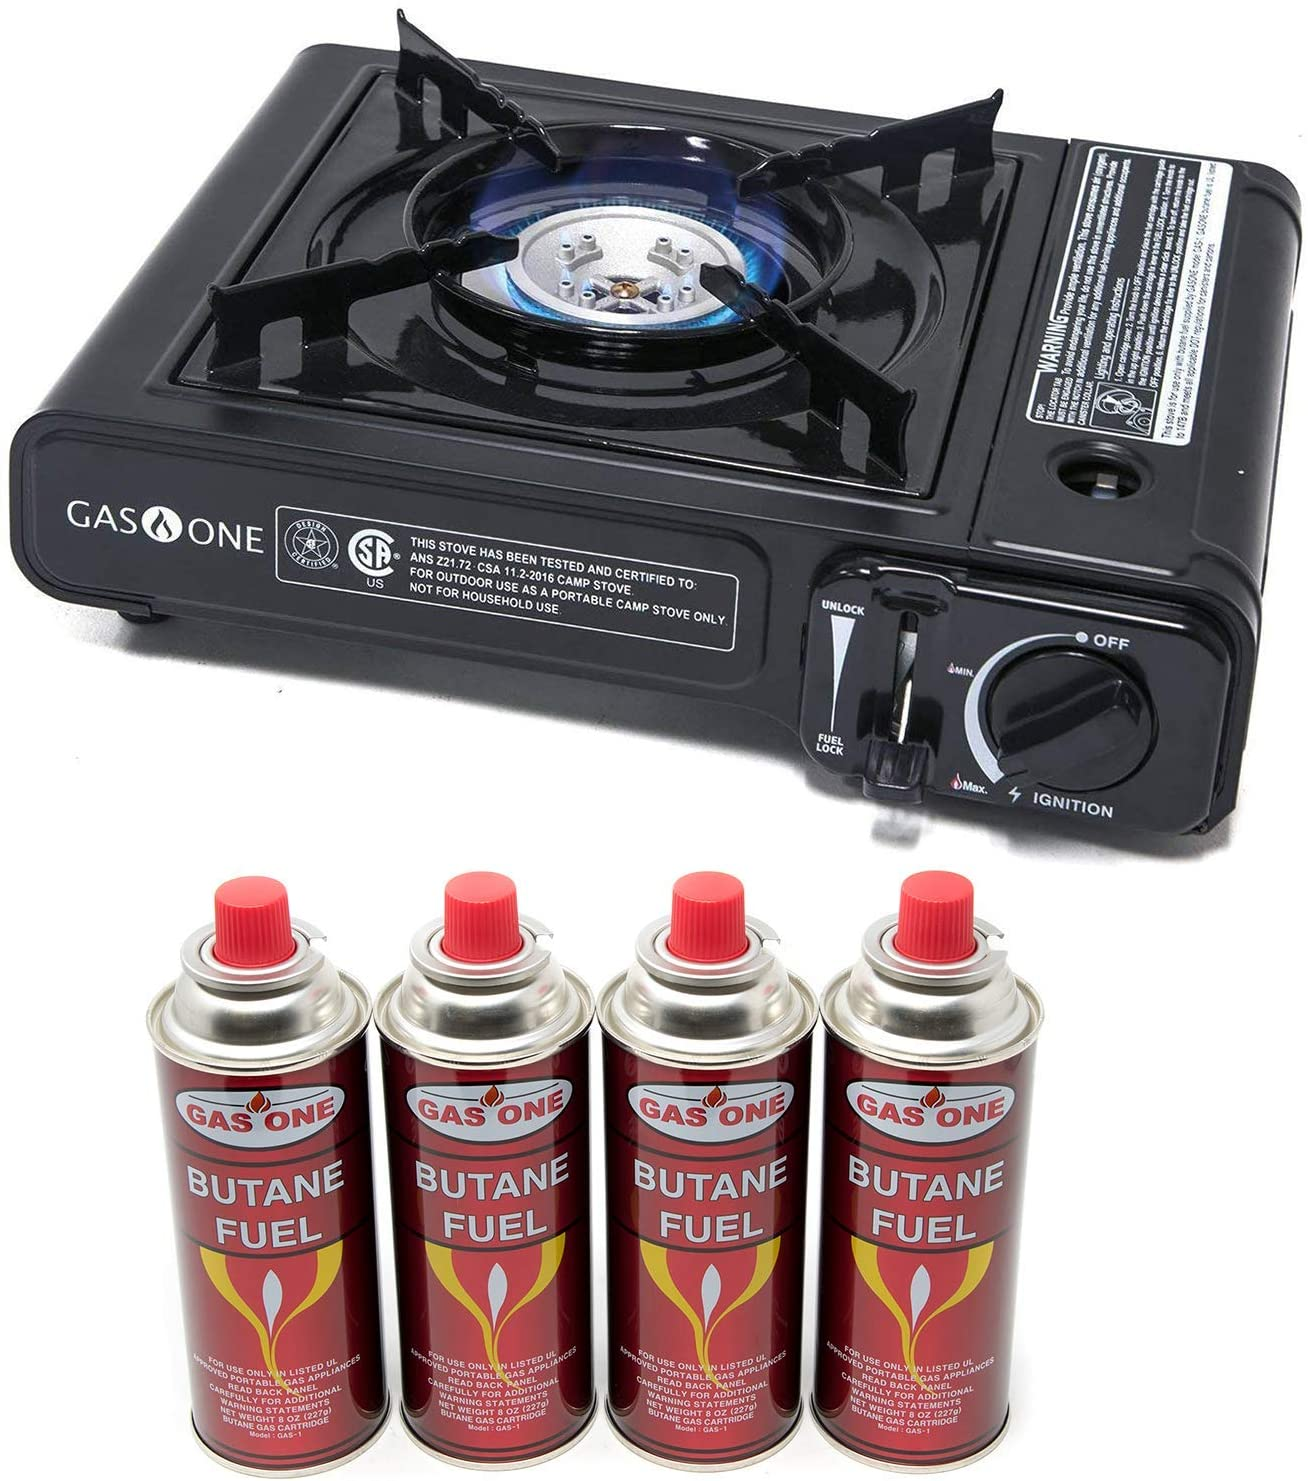 Gas ONE Butane Gas Stove with 4 Butane Fuel Canister Catridge